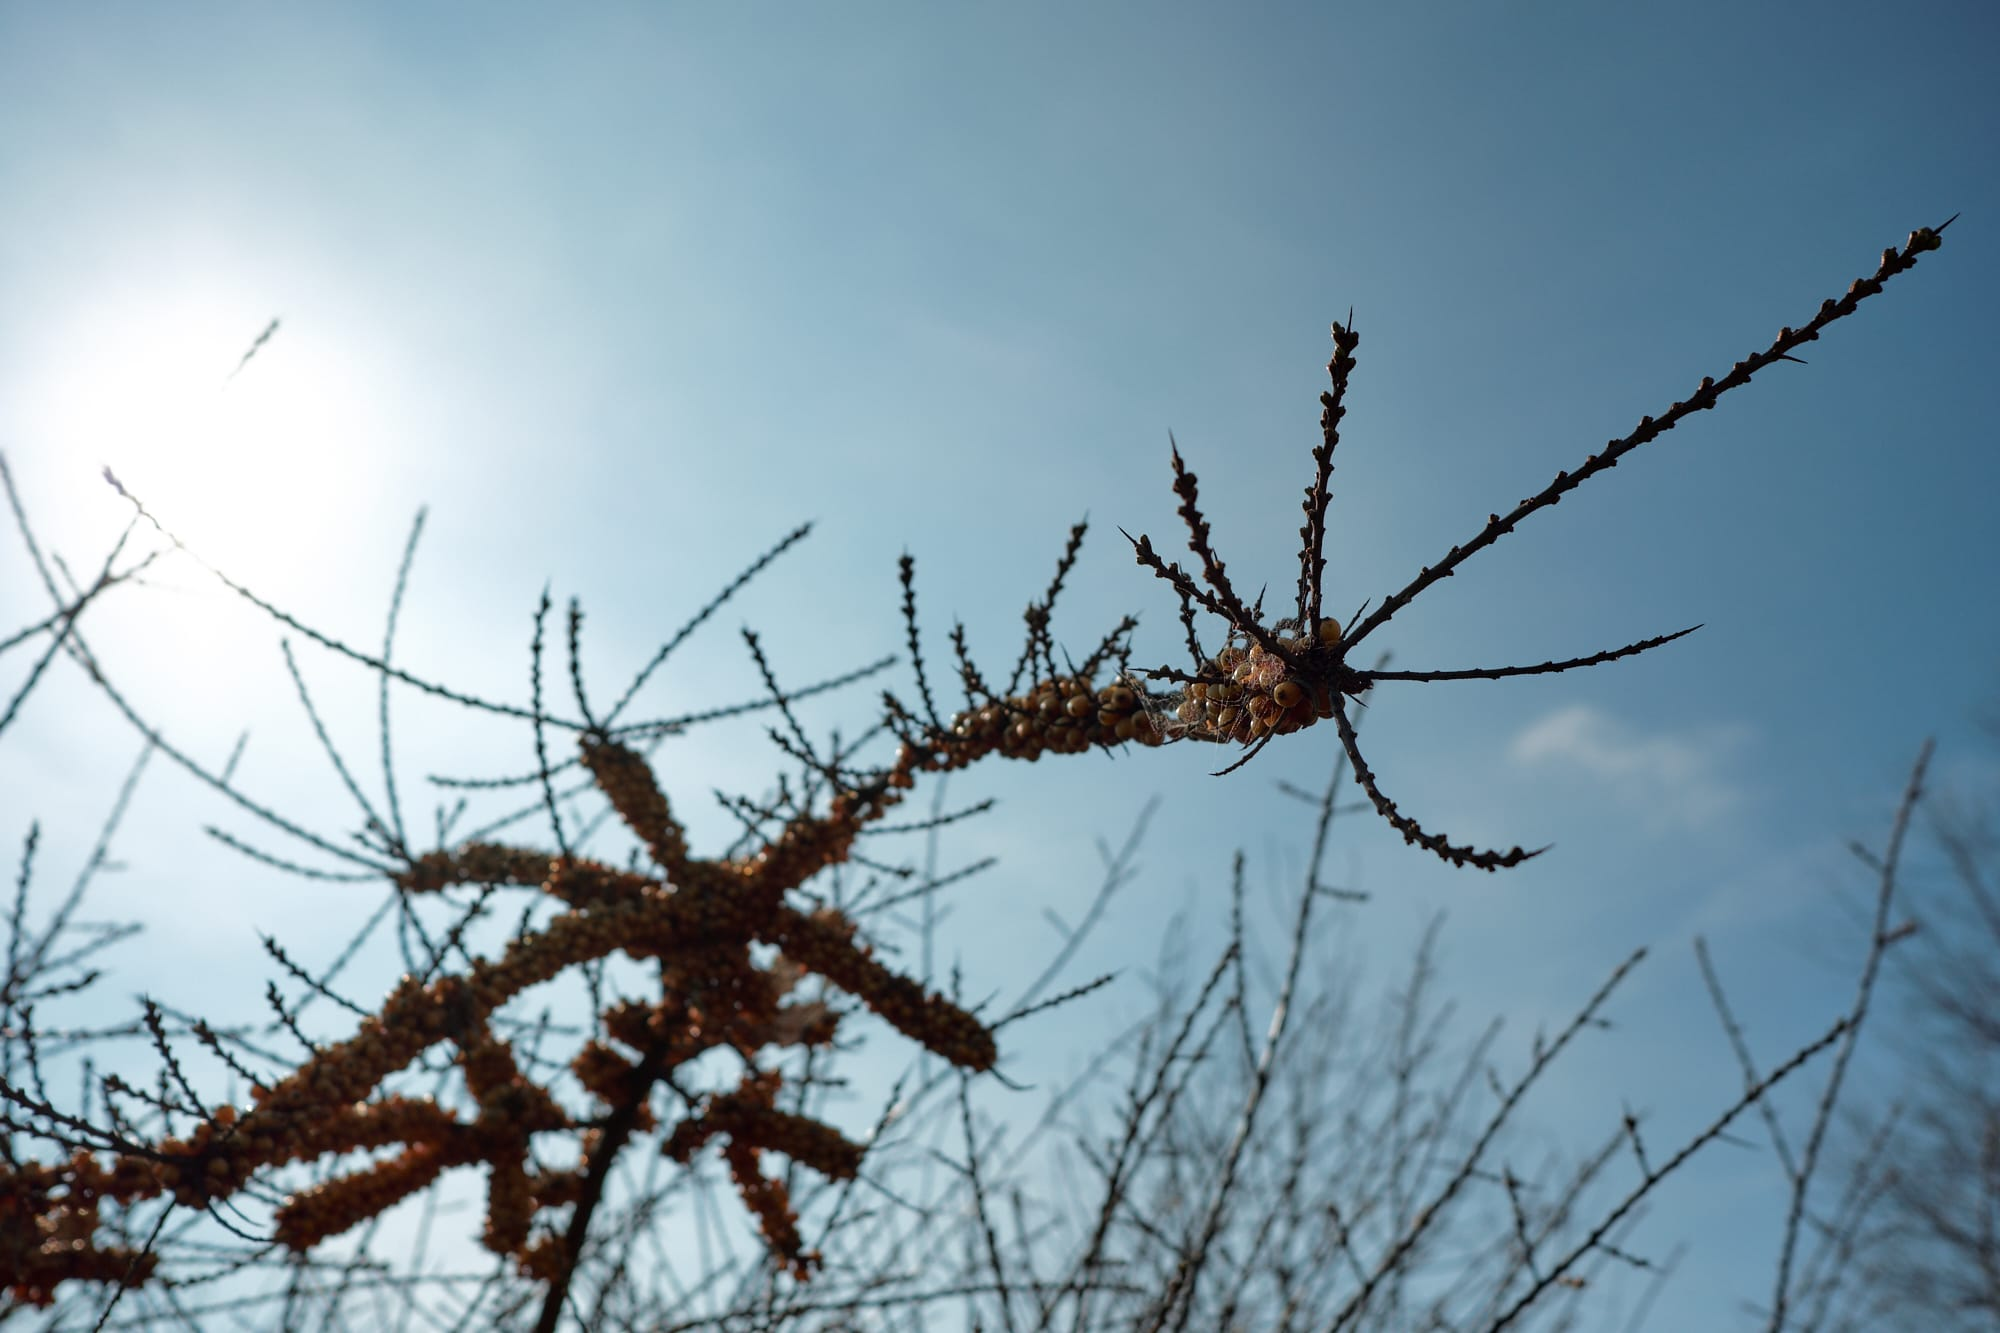 bush branch against the sun and sky